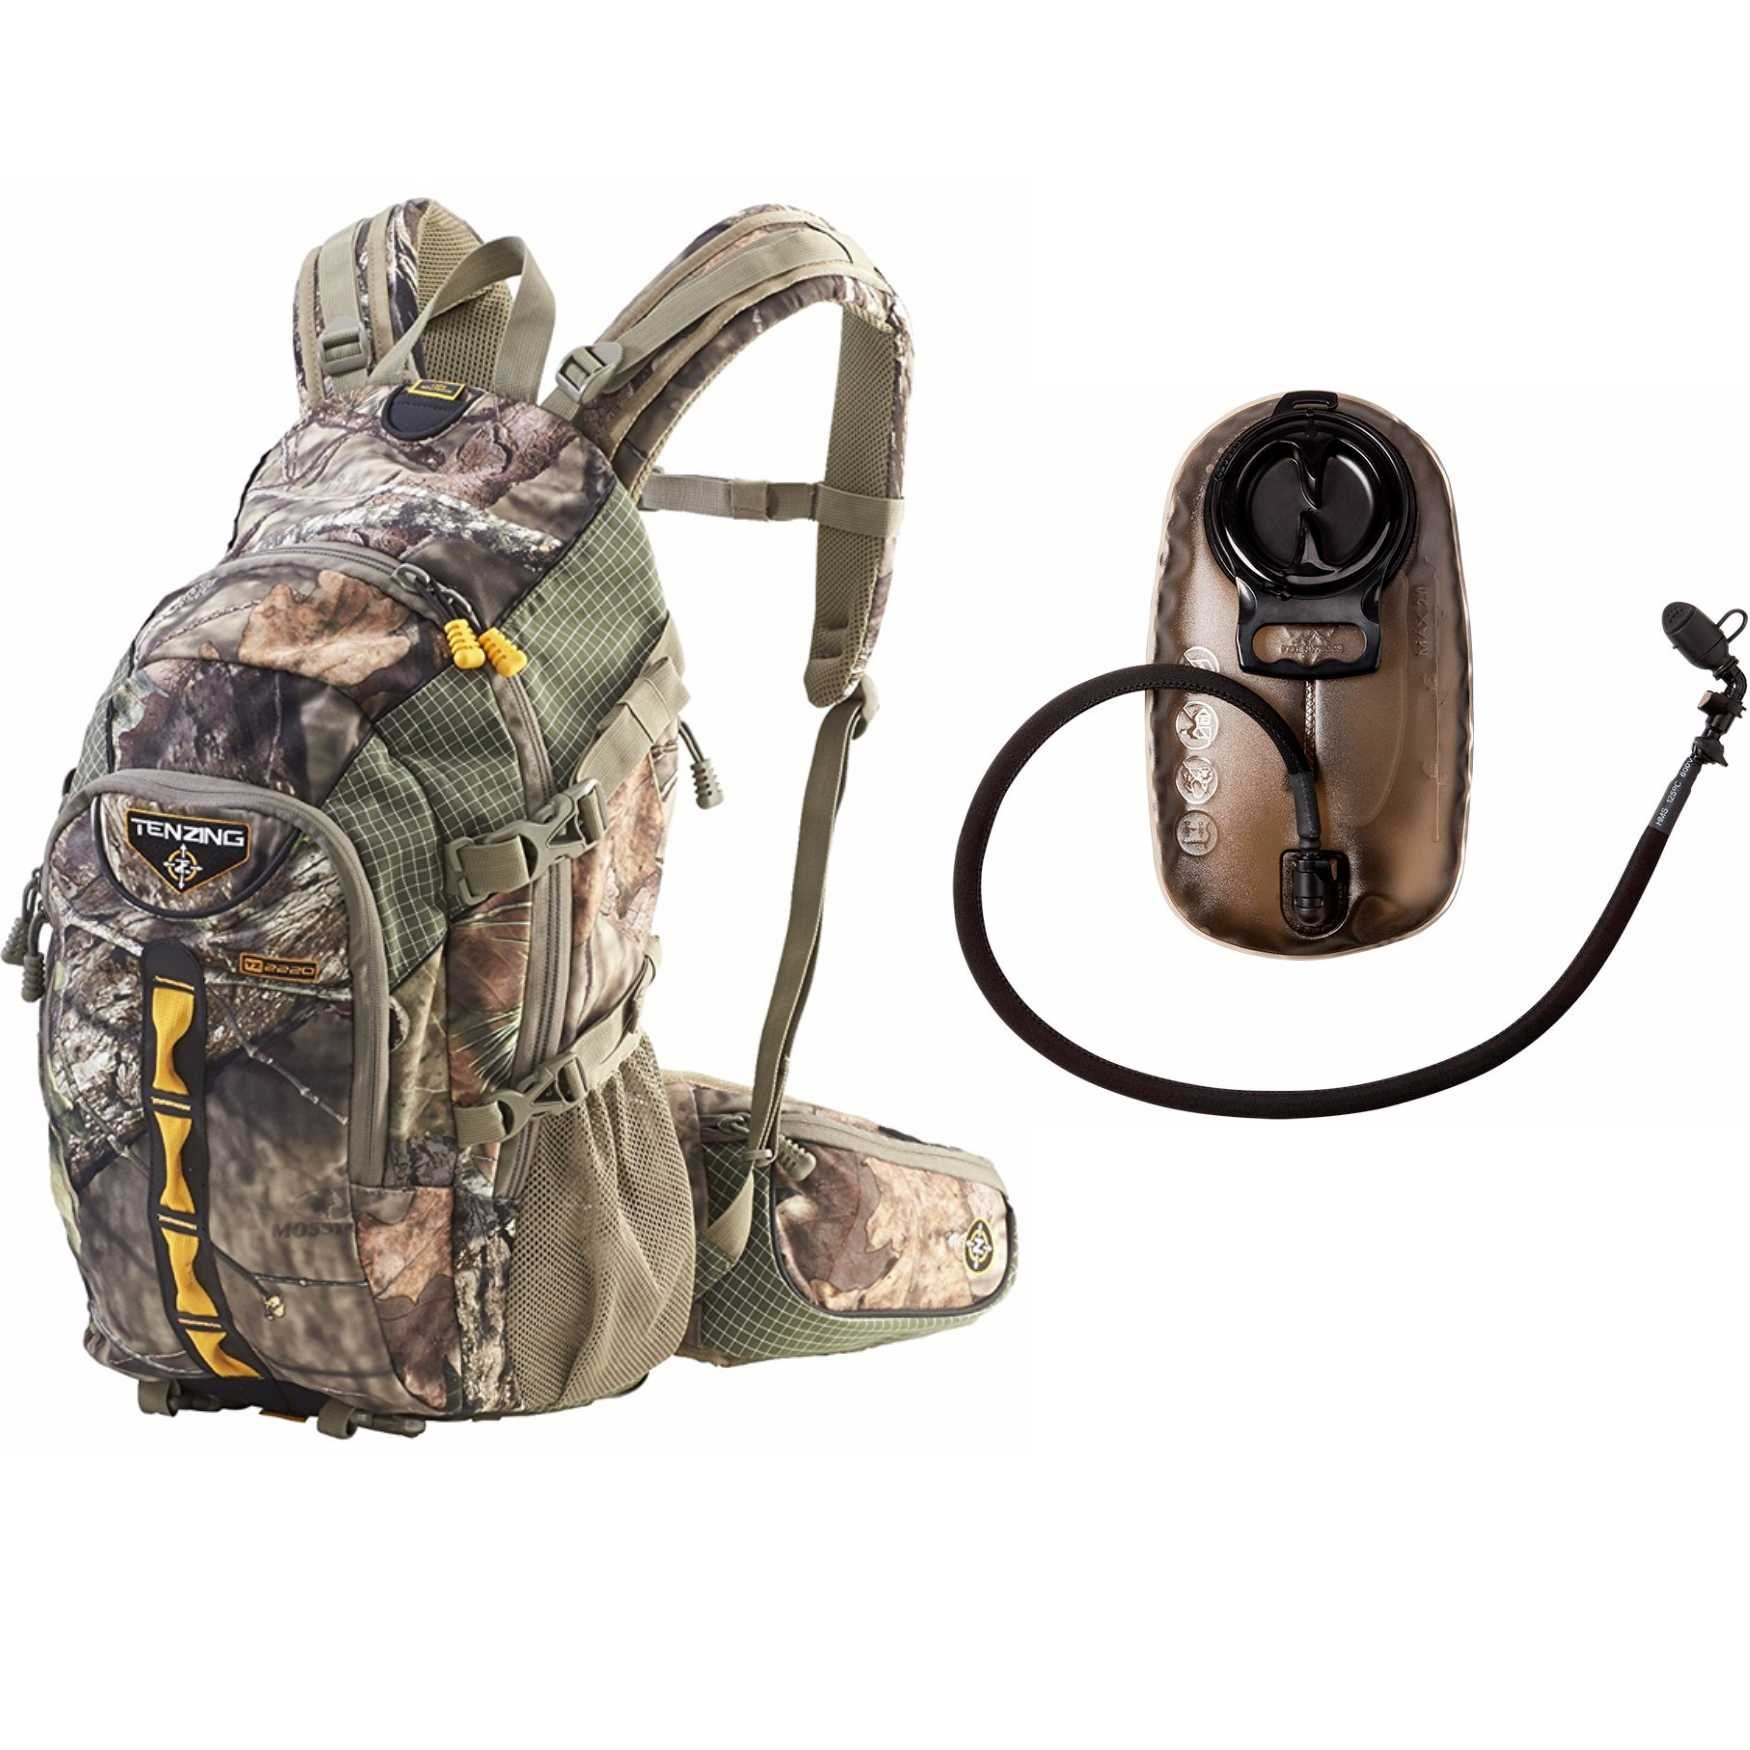 Tenzing TZ 2220 Game Hunting Day Pack Backpack (Mossy Oak Country Camo) with 2.0L Hydration Reservoir